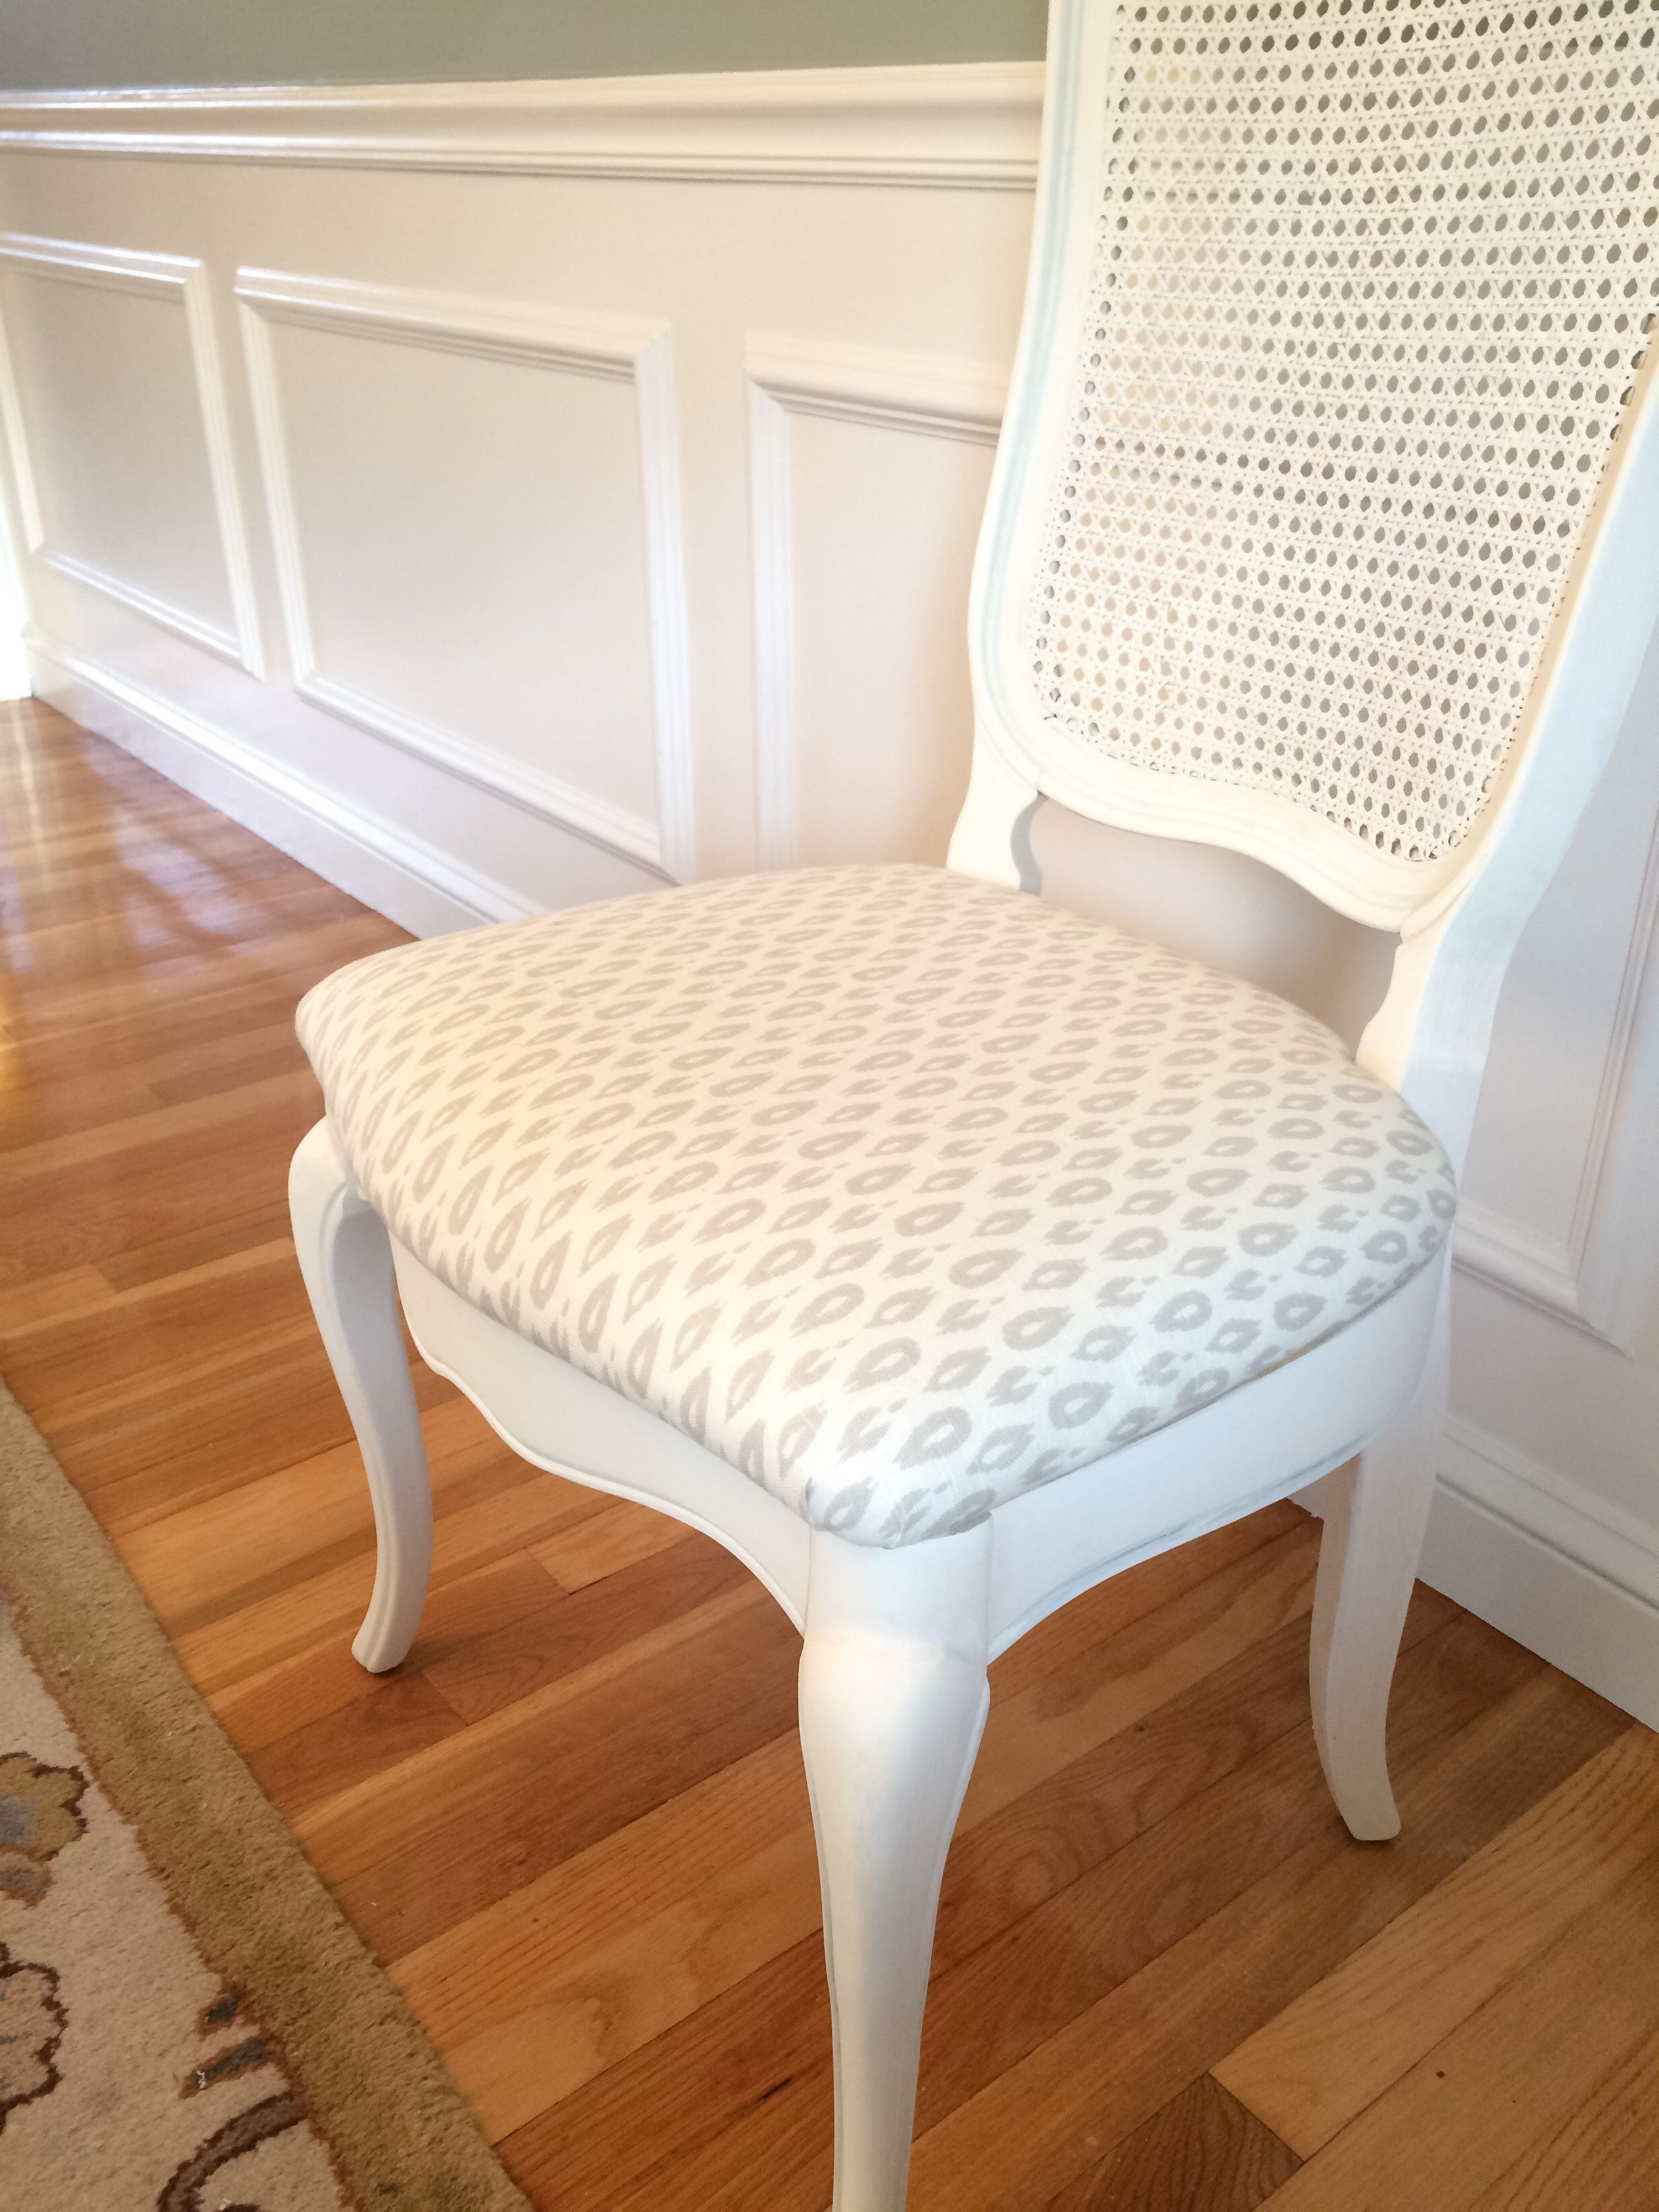 How to Reupholster a Dining Chair Seat (with Pictures ...